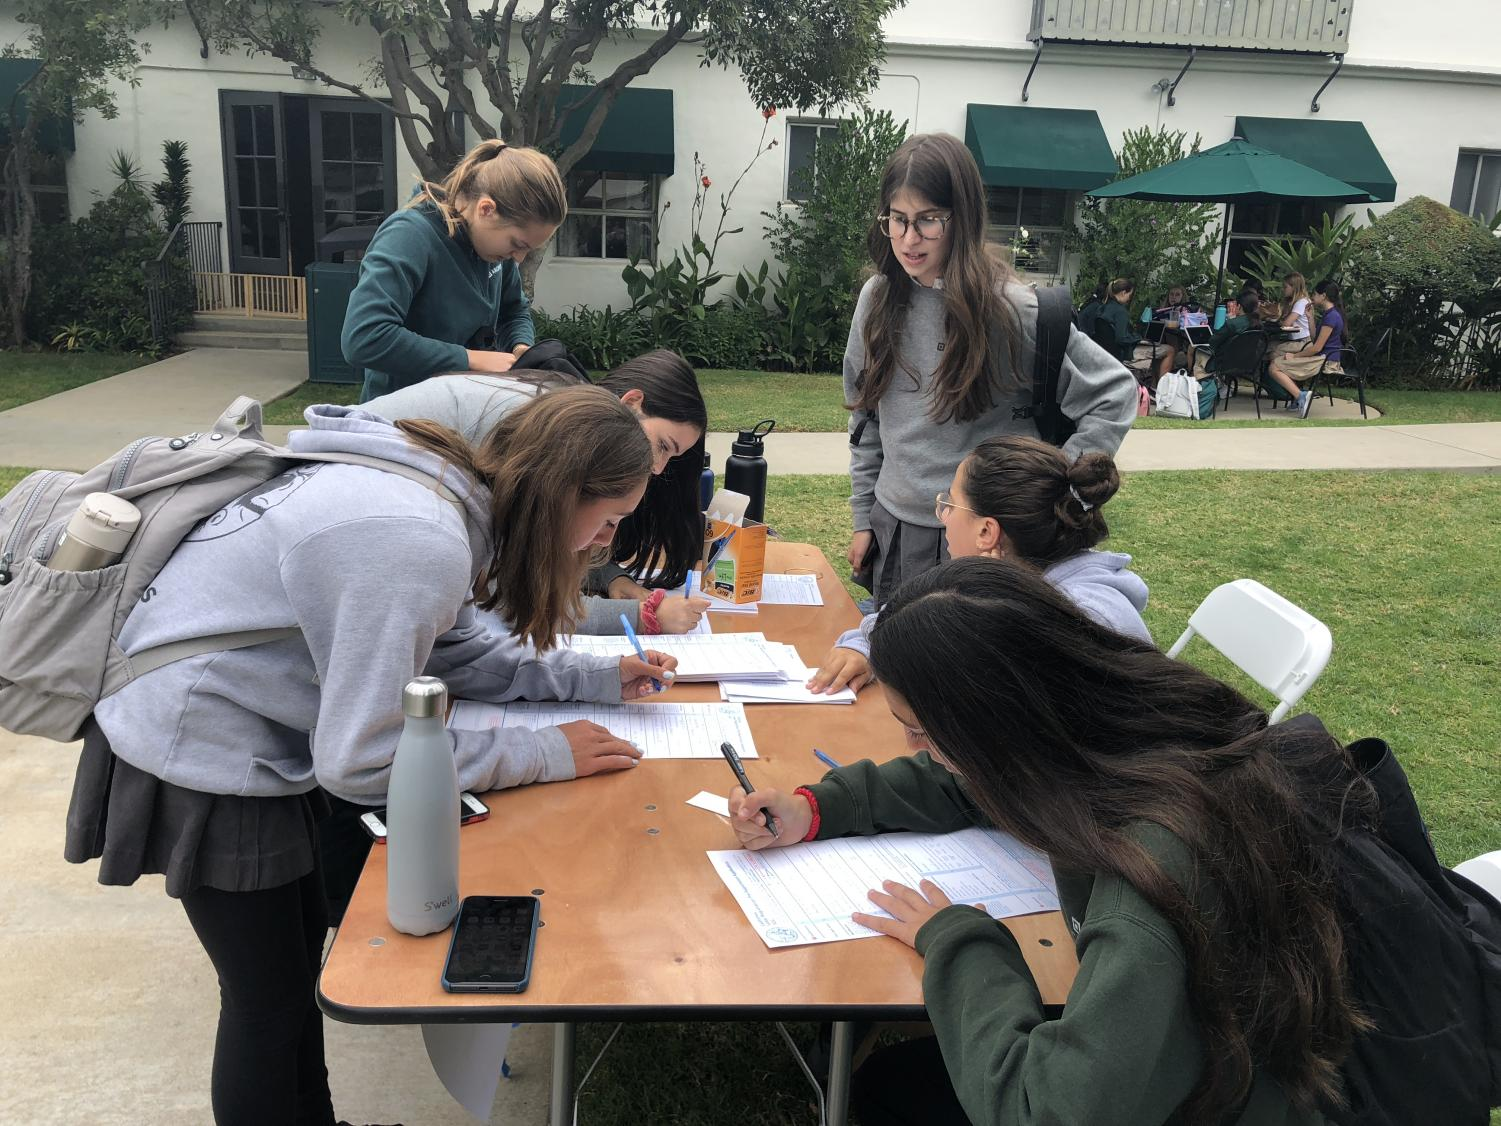 Archer sophomores and juniors pre-register to vote in the 2020 election. The event was run by the Human Rights Watch Student Task Force.